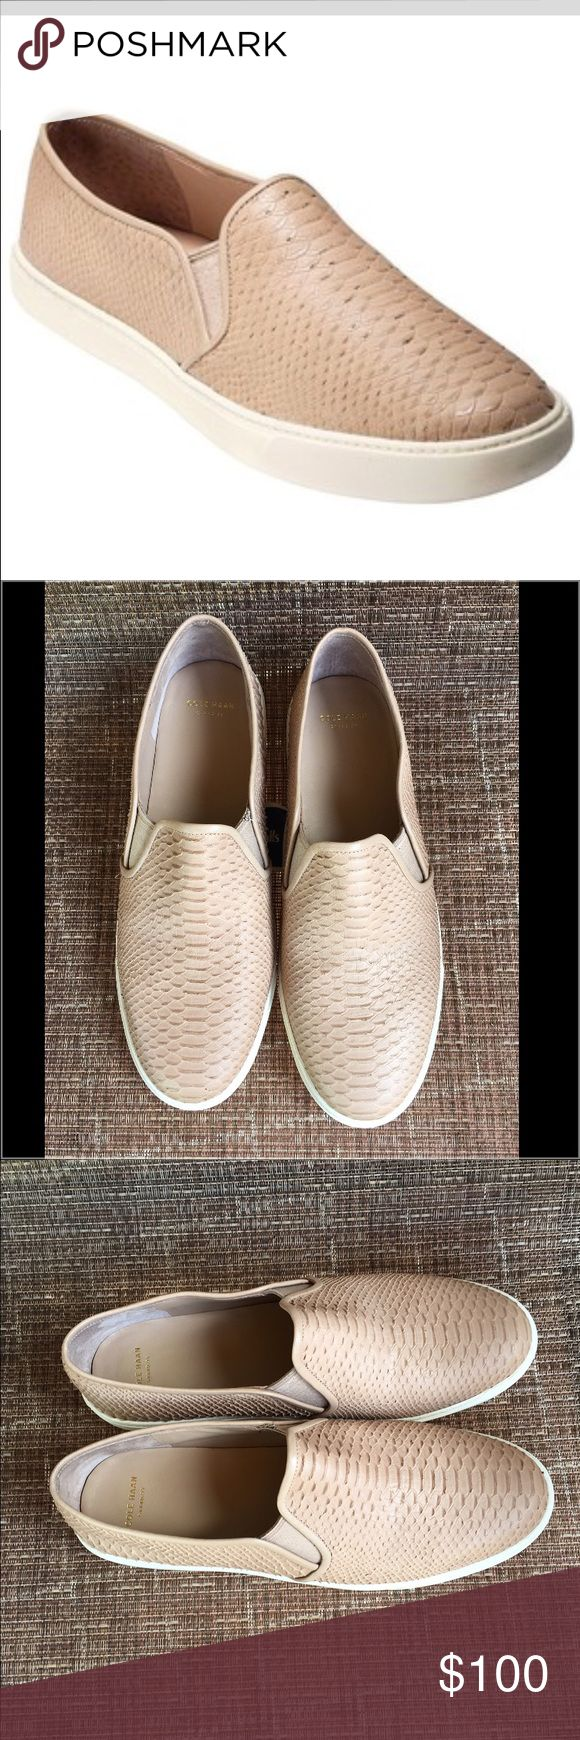 WKD SALE! Cole Haan Nude Slip On Sneaker Cole Haan Nude Slip On Sneaker.  Brand new without tags.  Never worn.  Perfect color to match so many outfits for a comfortable and chic feel! Cole Haan Shoes Moccasins